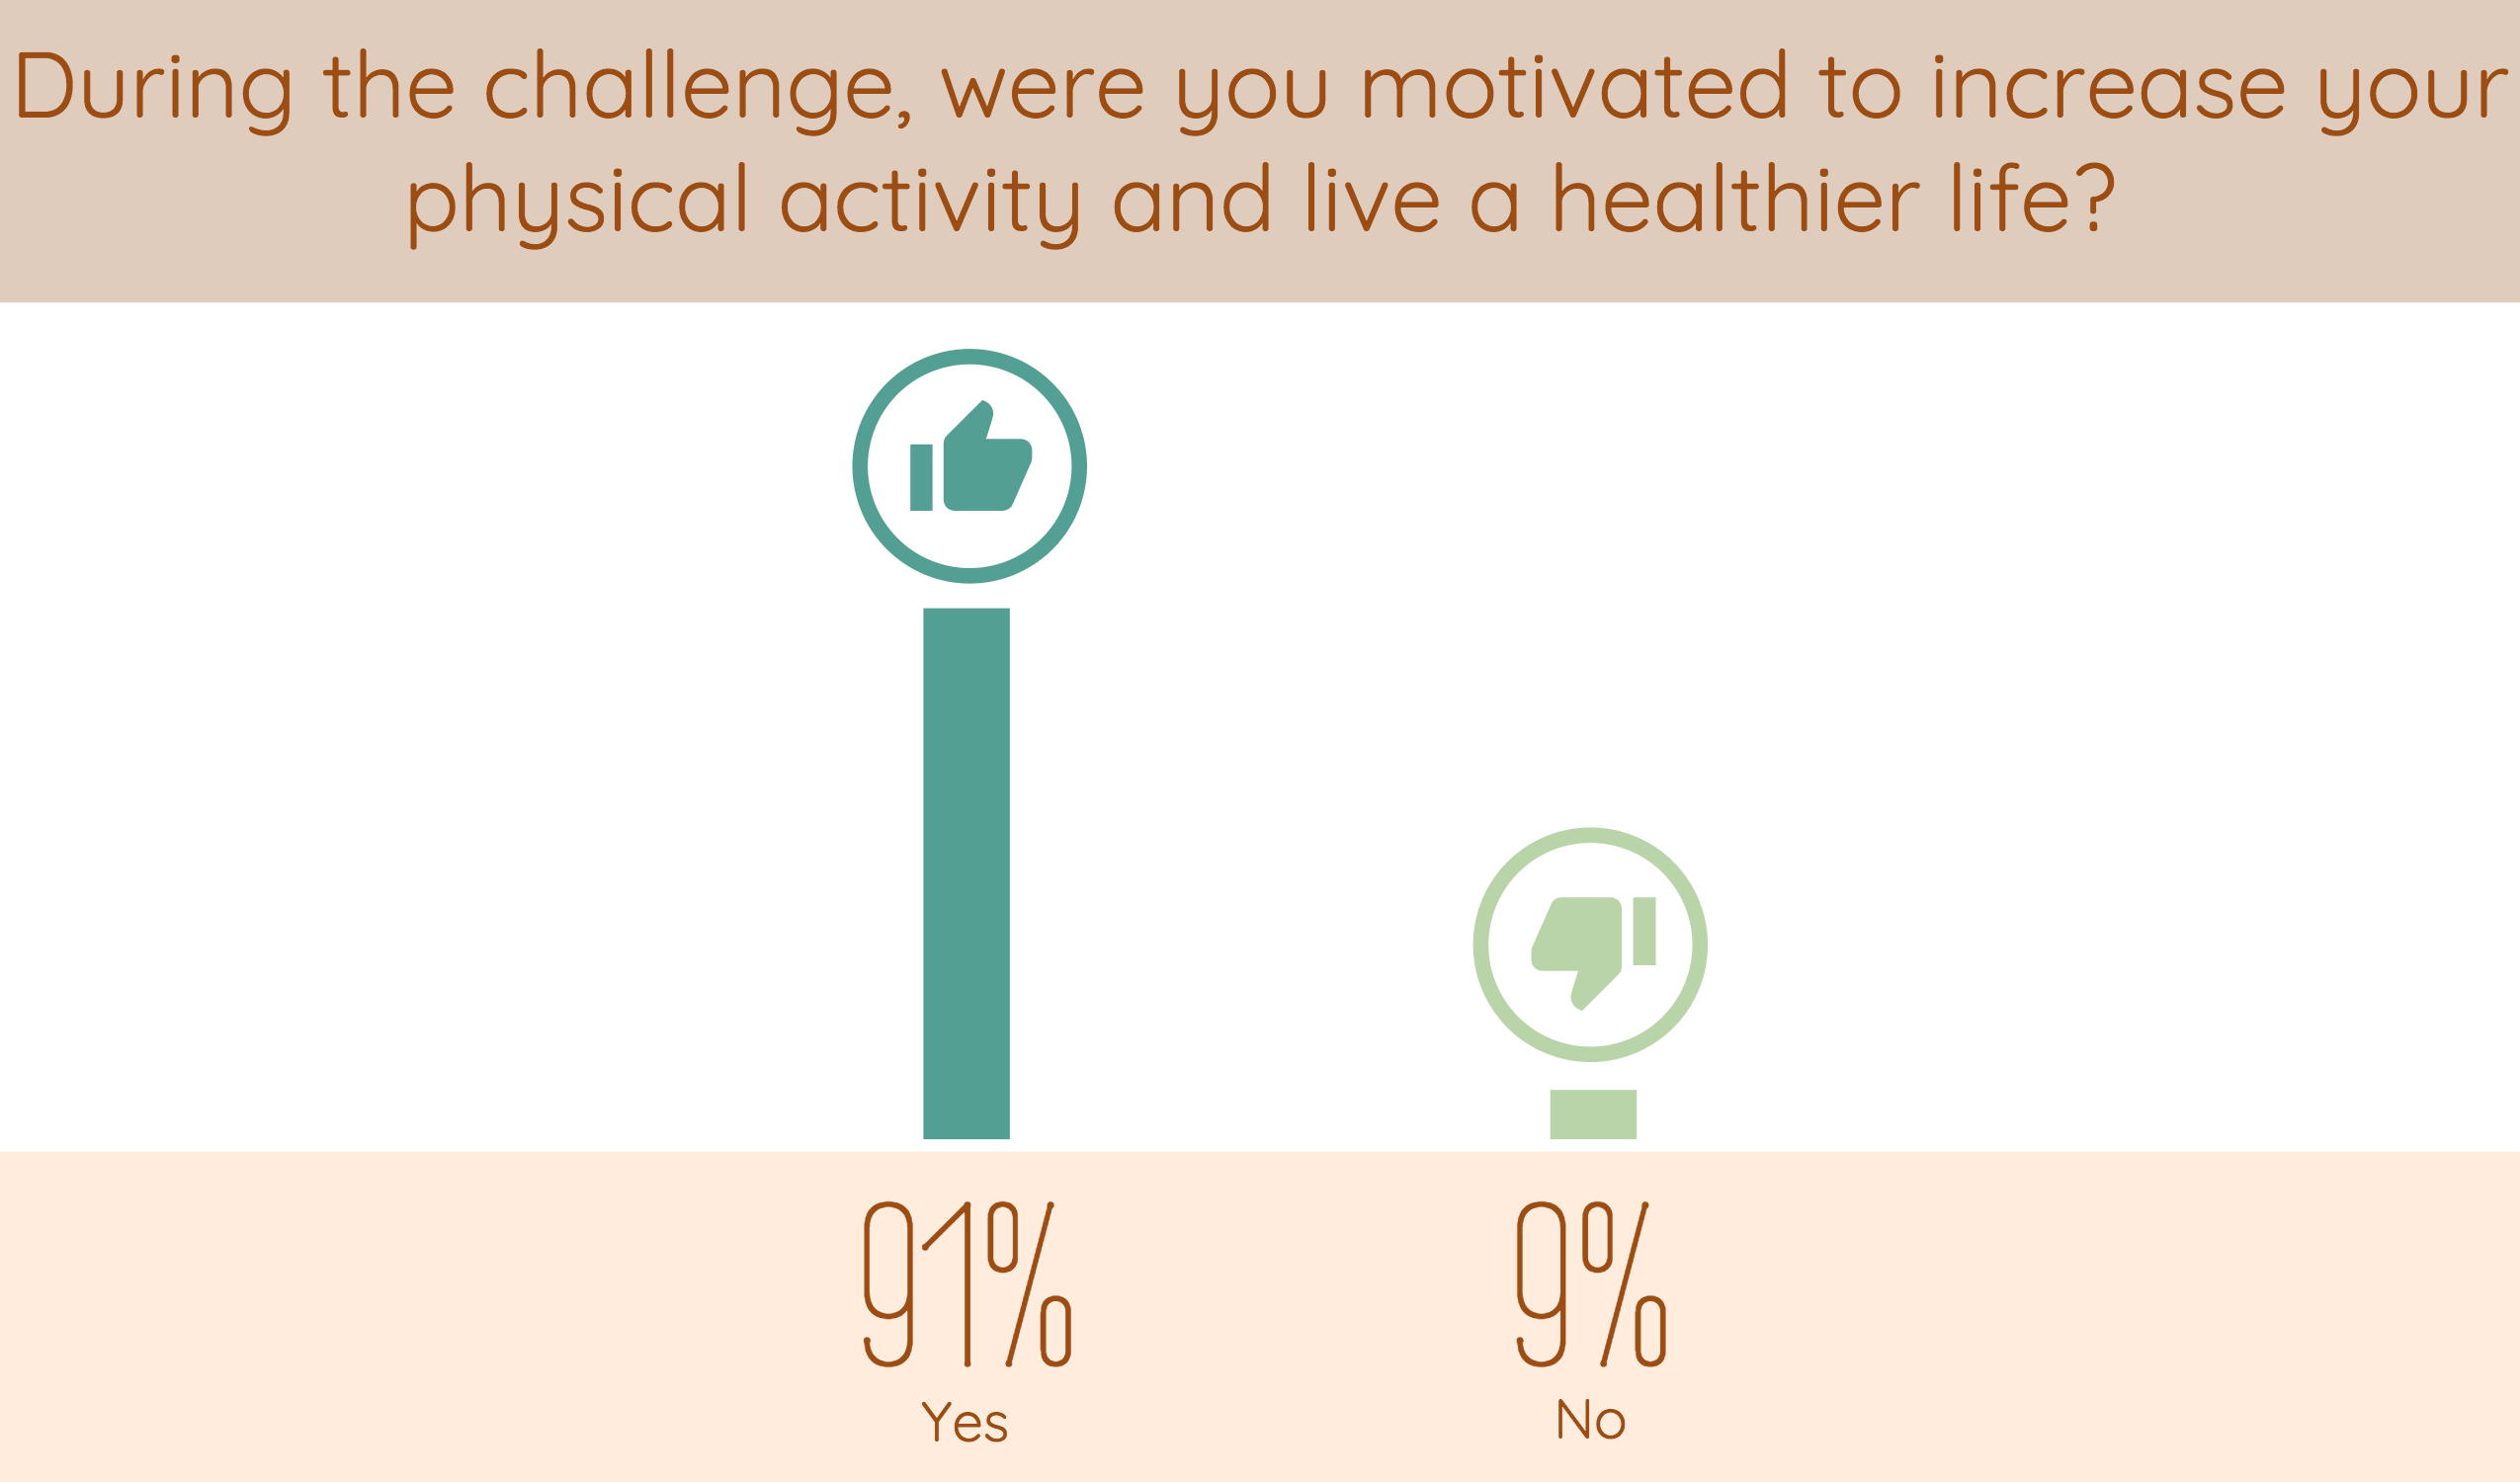 during the wellness challenges, were you motivated to increase your physical activity and live a healthier life?